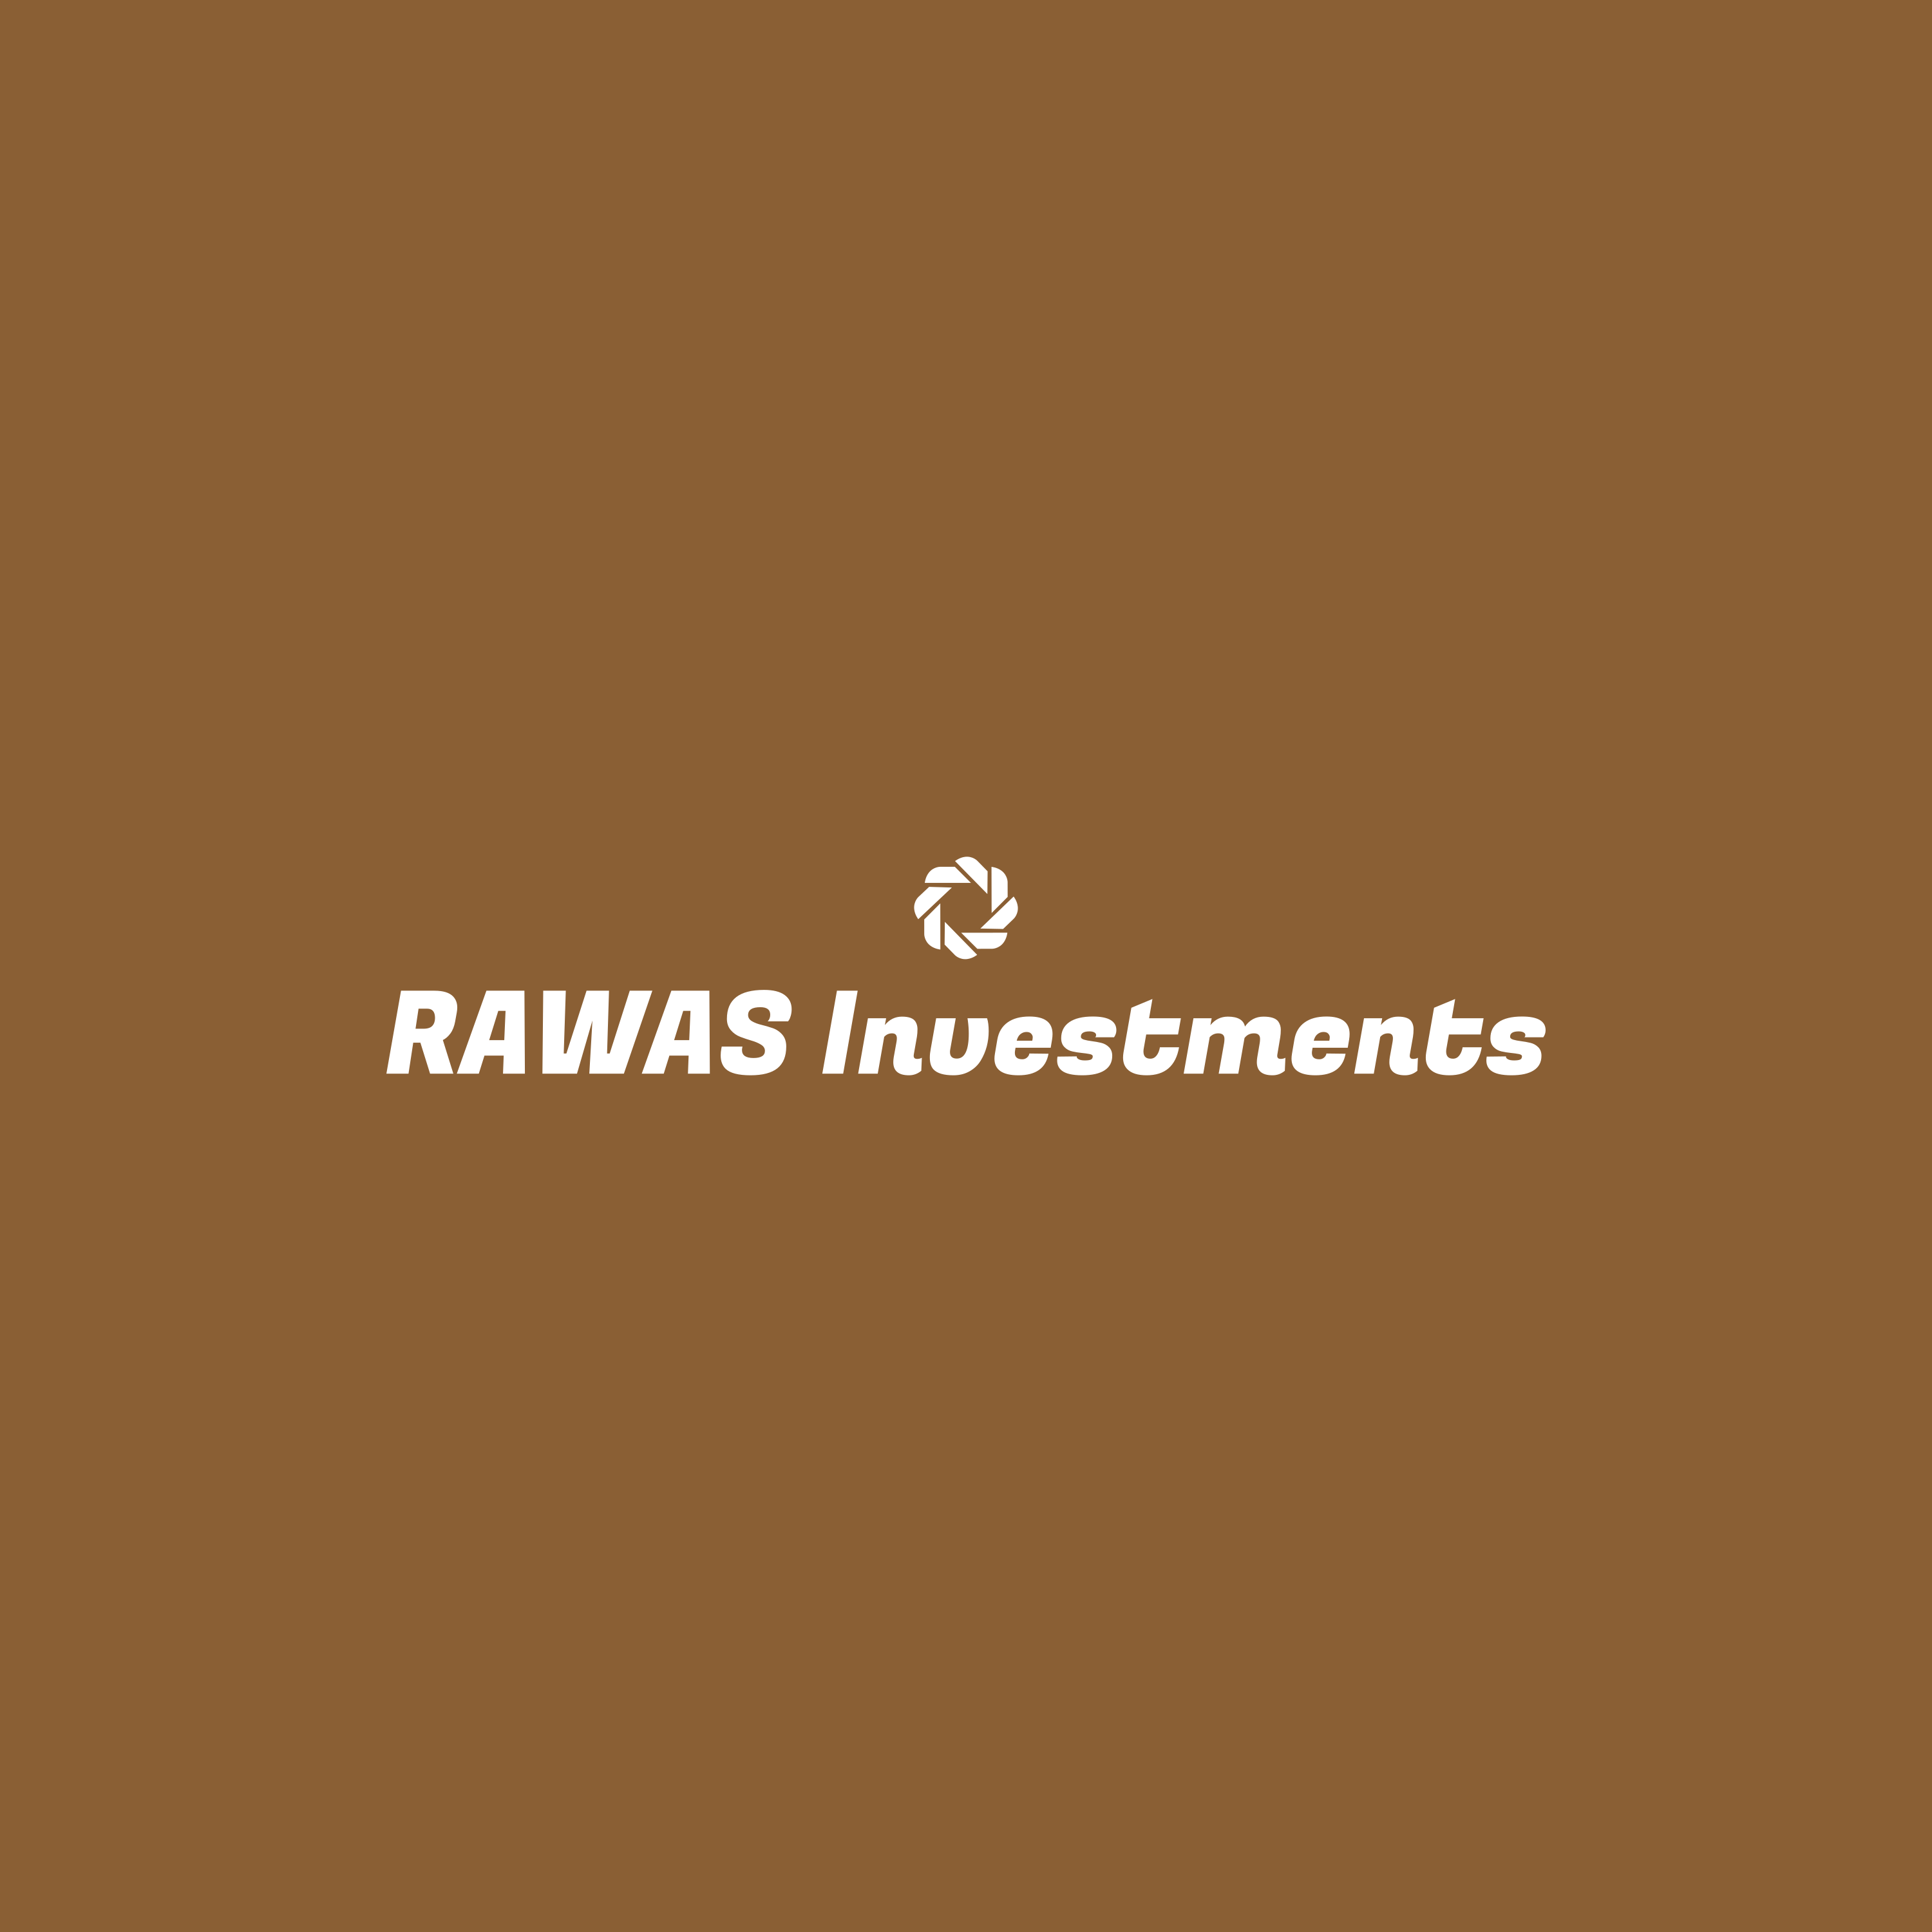 RAWAS Investments